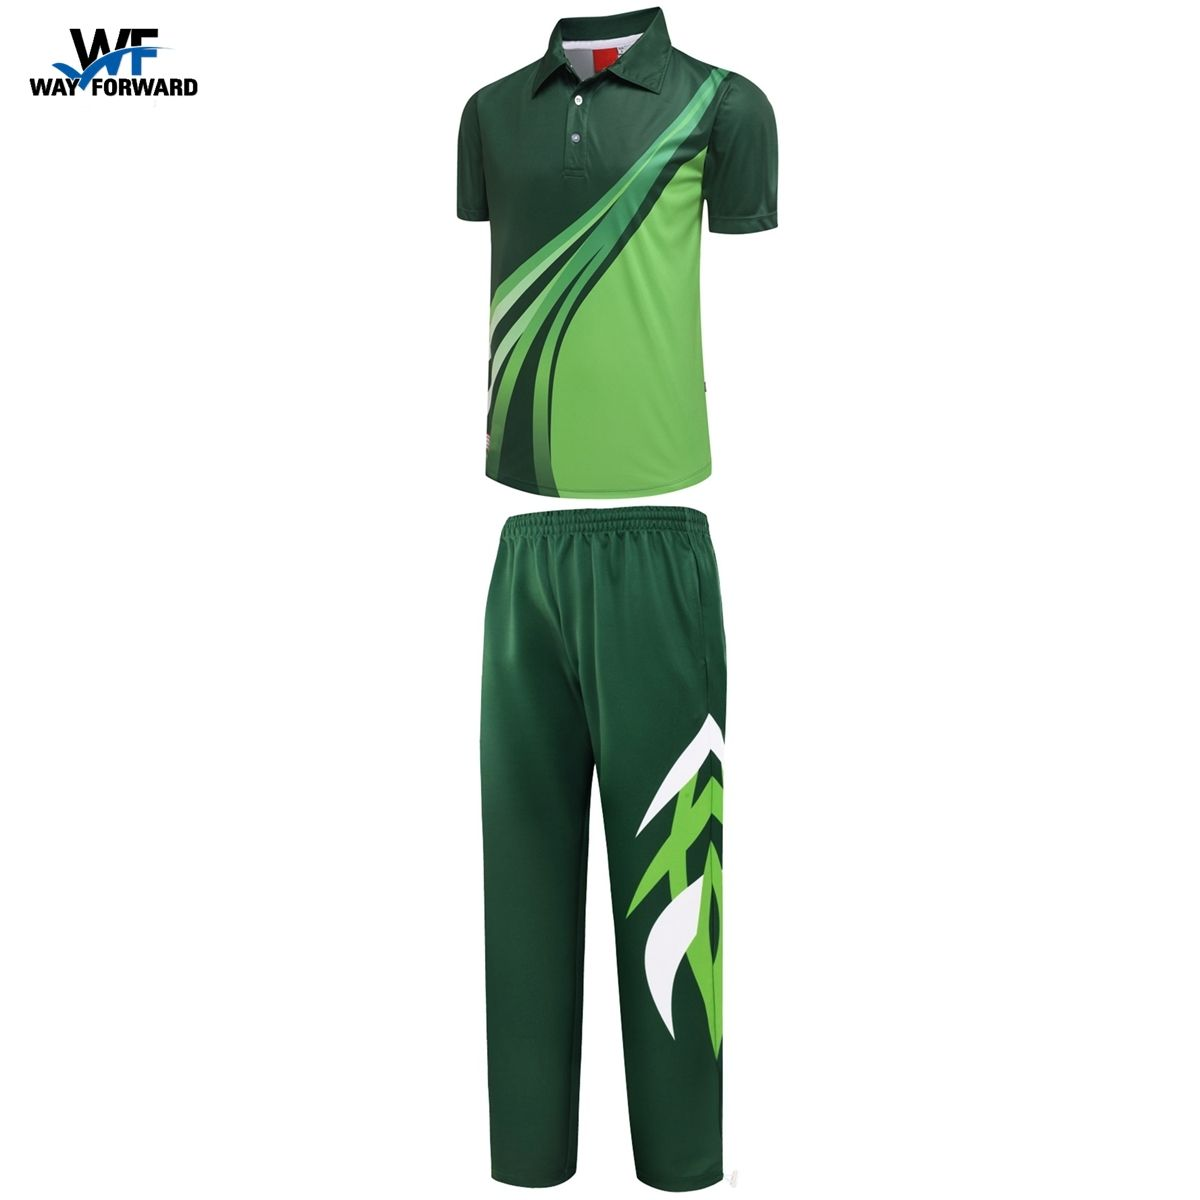 Uniform Cricket Jersey And Trouser Customize Shirts Sublimation Men And Women Design Team Wear Tracksuit Custom Shirts